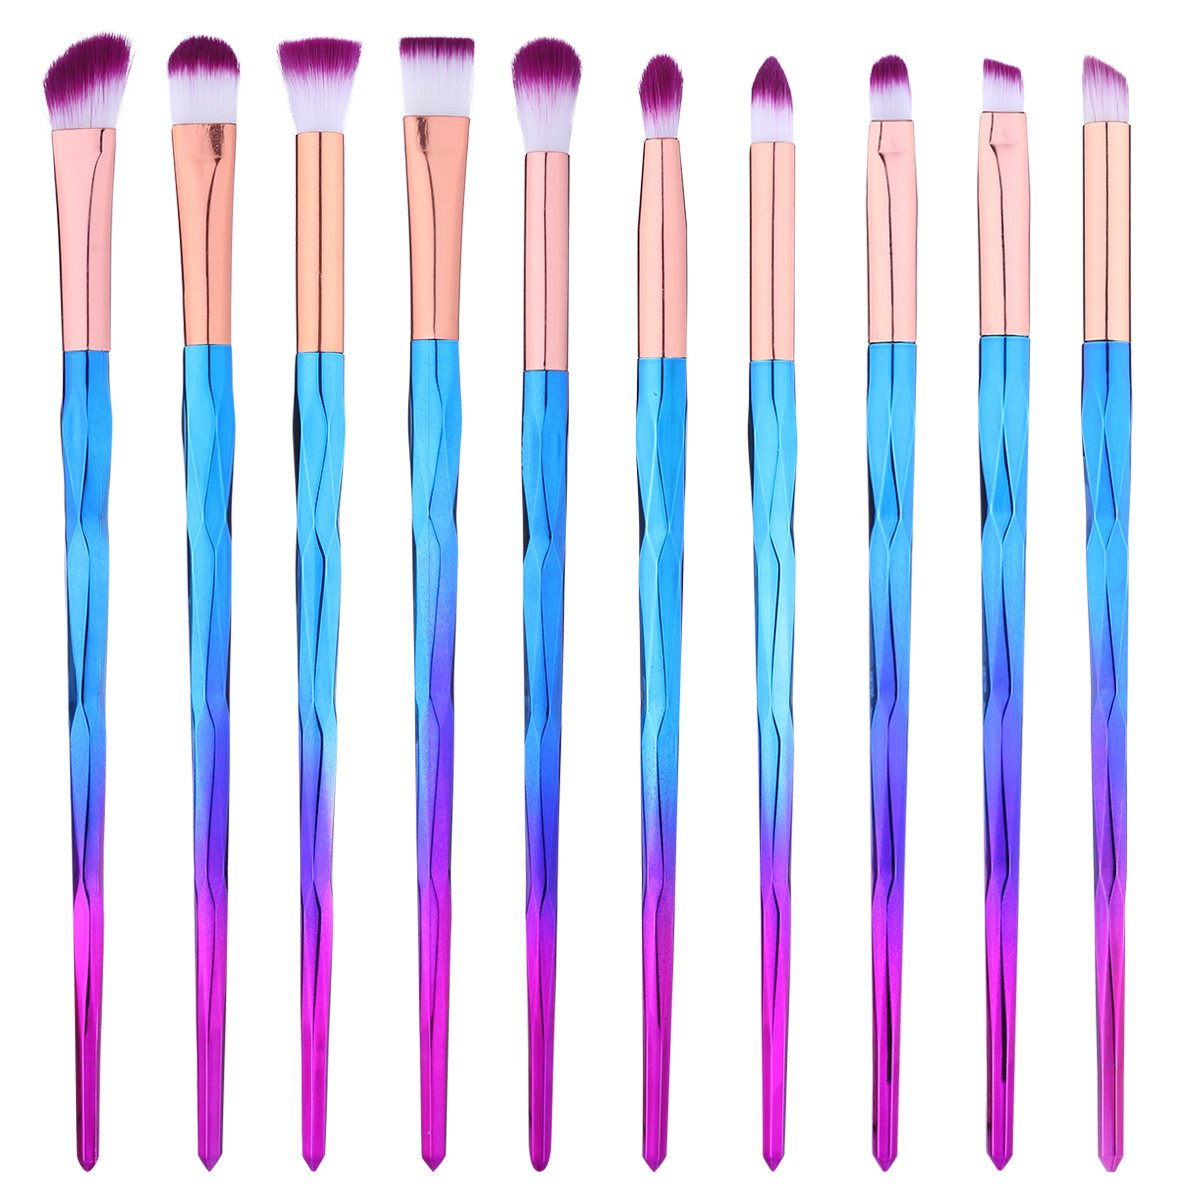 Eye Brush Set Professional 10 Pieces Eye Makeup Brushes for Shading or Blending of Eyeshadow Cream Powder Eyebrow Highlighter Concealer Cosmetics Brush Tool BTYMS